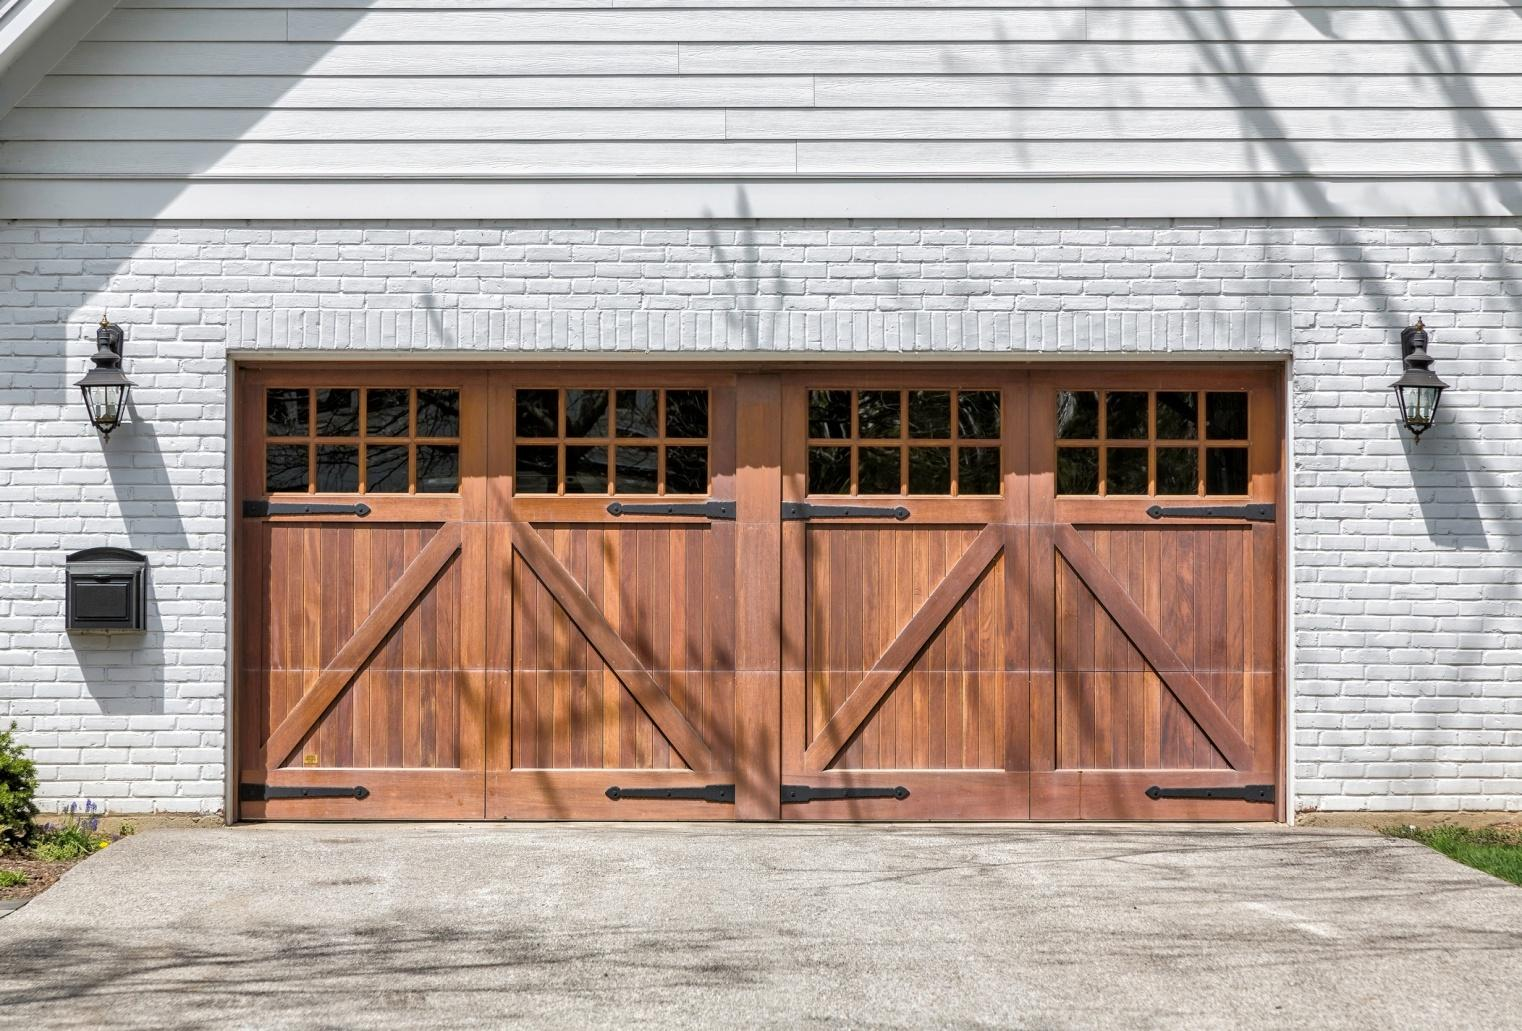 D:\Works\Order\Feb 2019\SP_FEB_18\Install A Replacement Garage Door.jpg